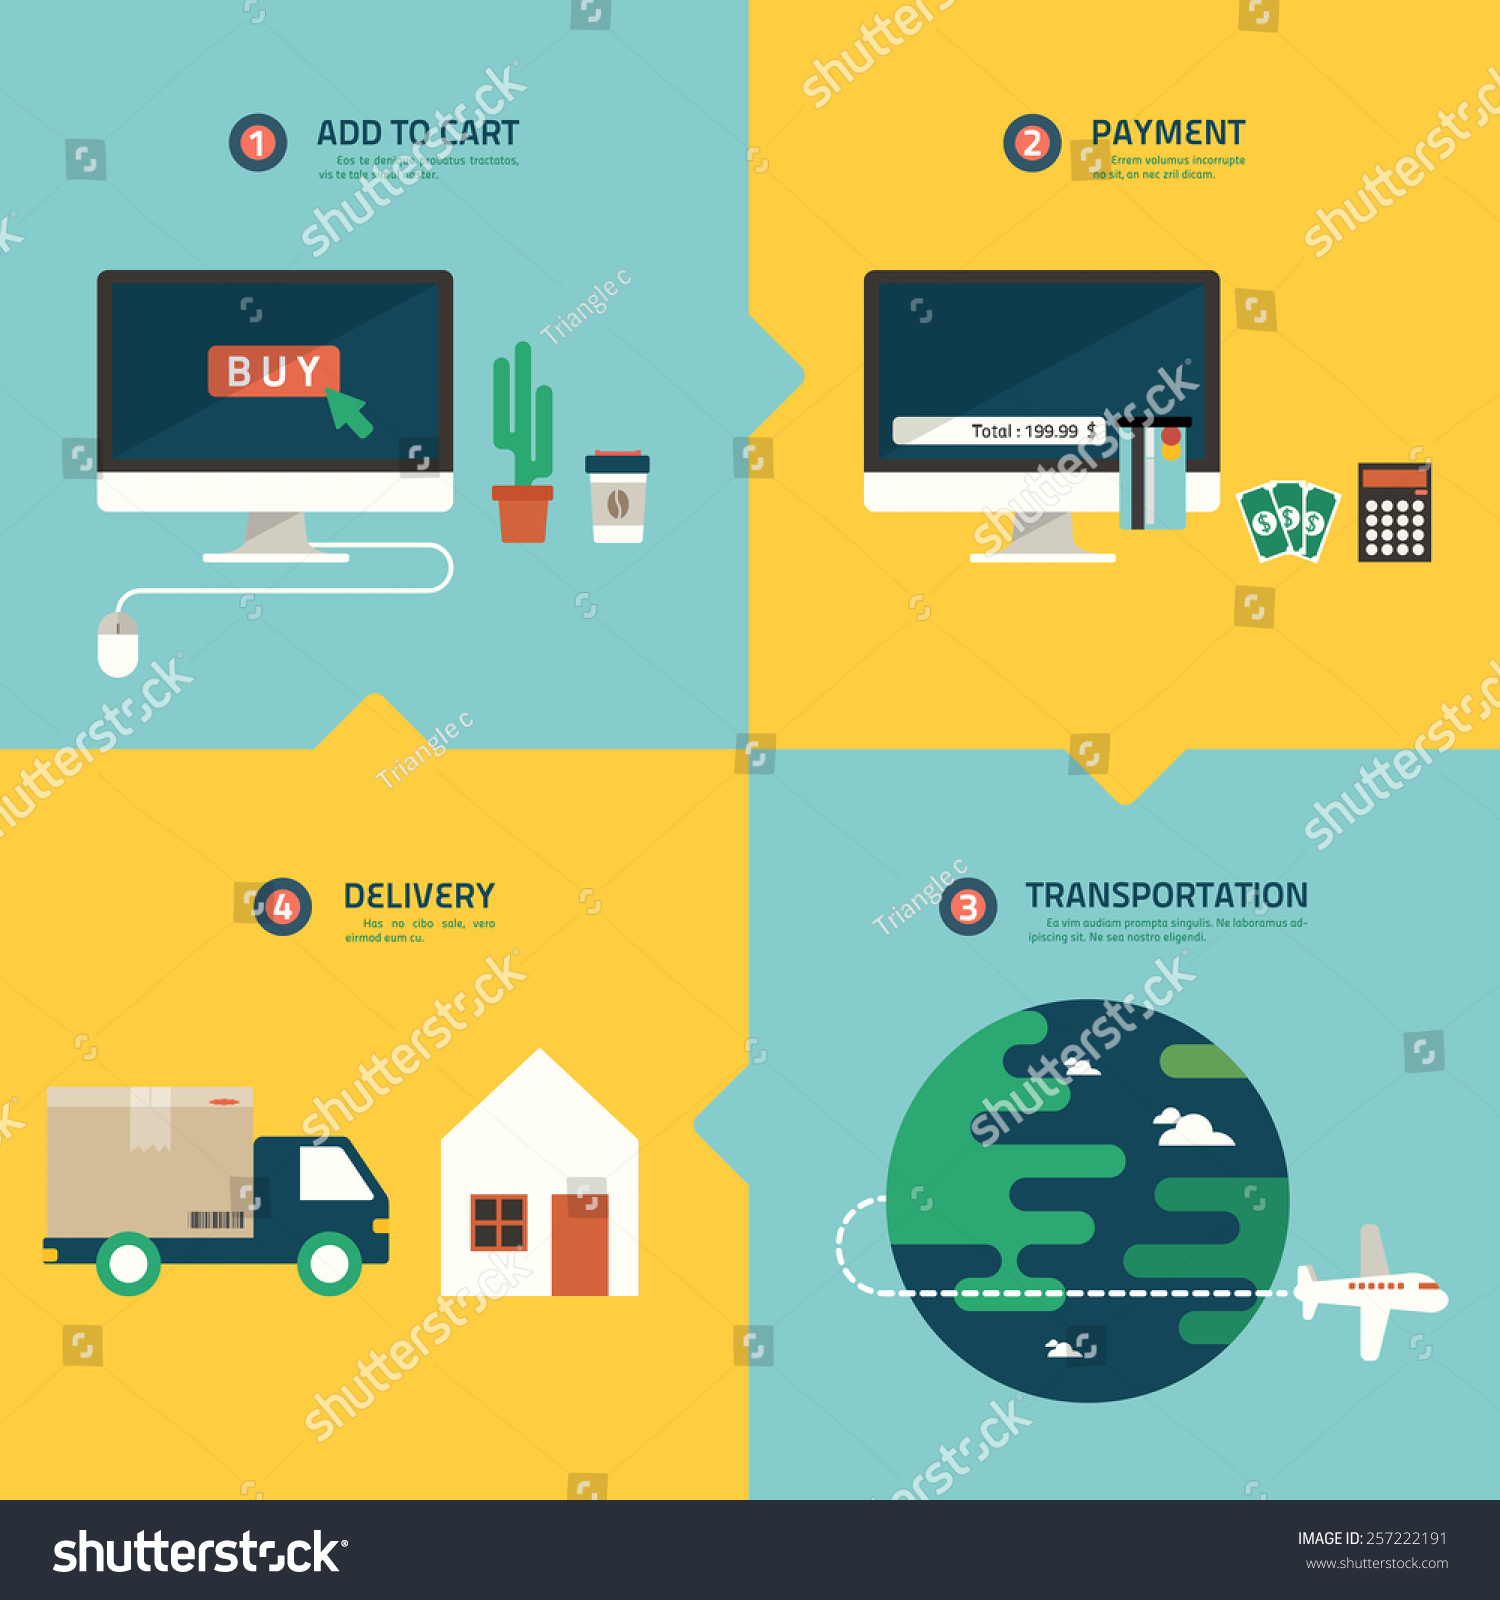 stock-vector-step-for-online-shopping-infographic-vector-257222191.jpg